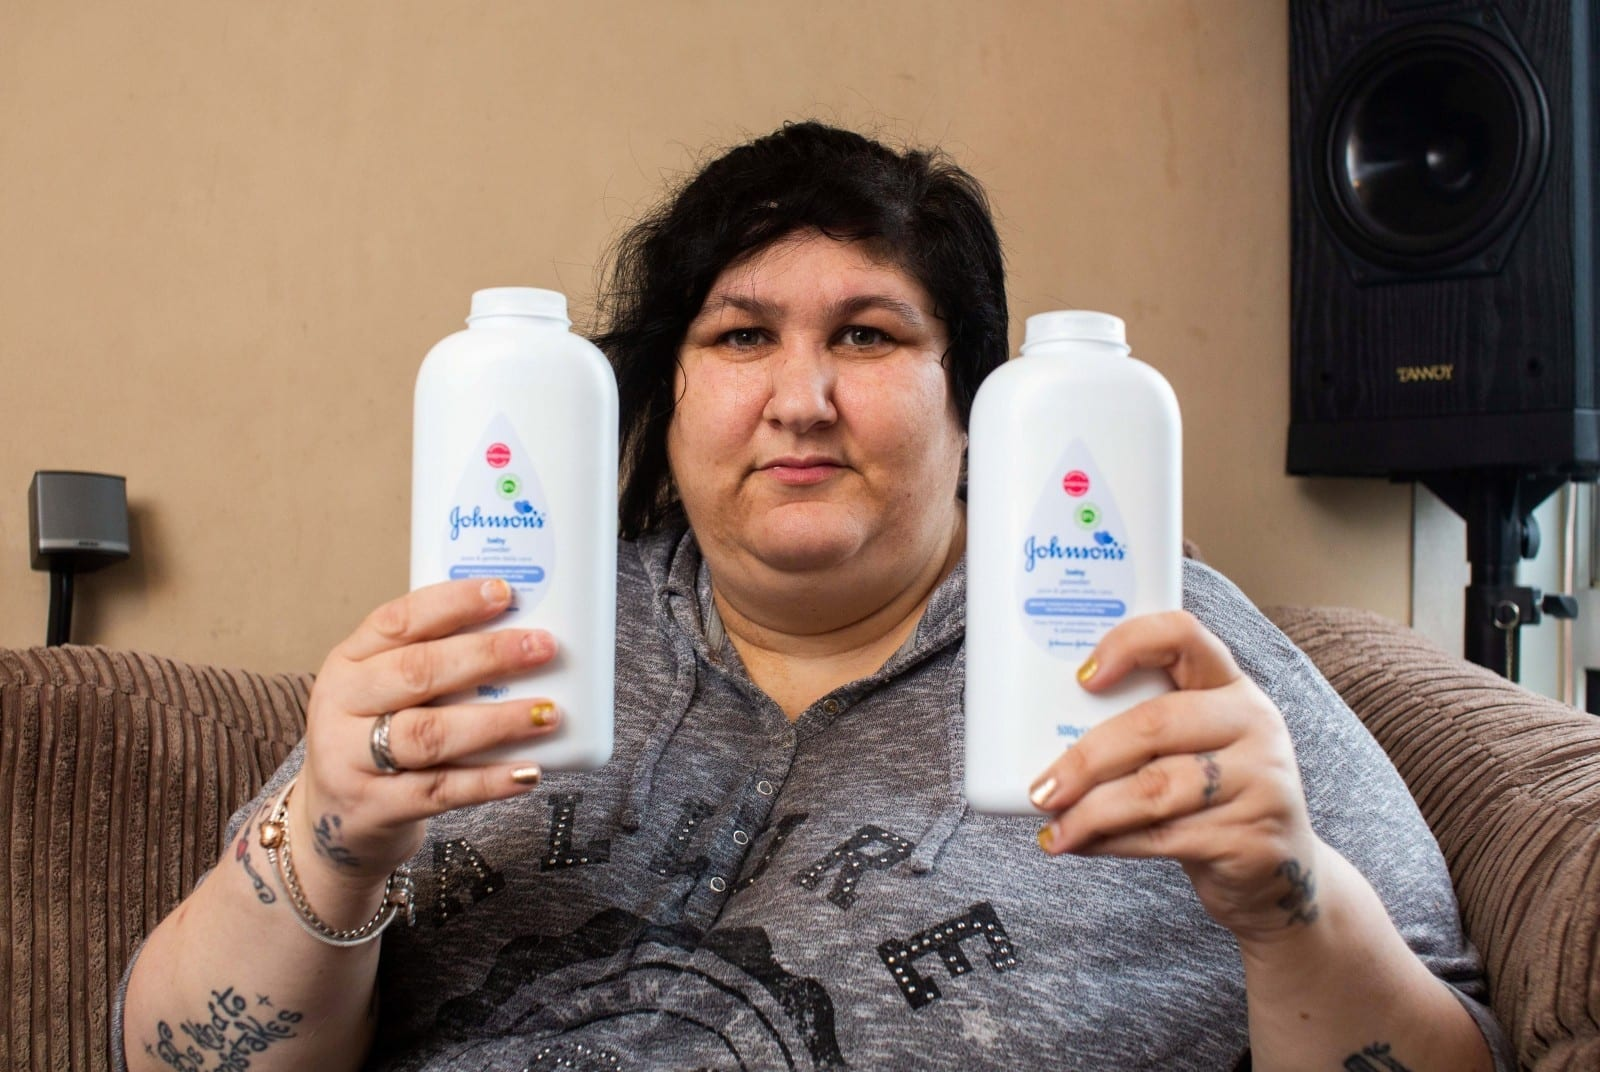 'I Can't Go Half An Hour Without It!' -  Mum Speaks Of Rare Condition Which Has Seen Her Spend £8,000 On Eating A Tub Of Baby Powder A DAY